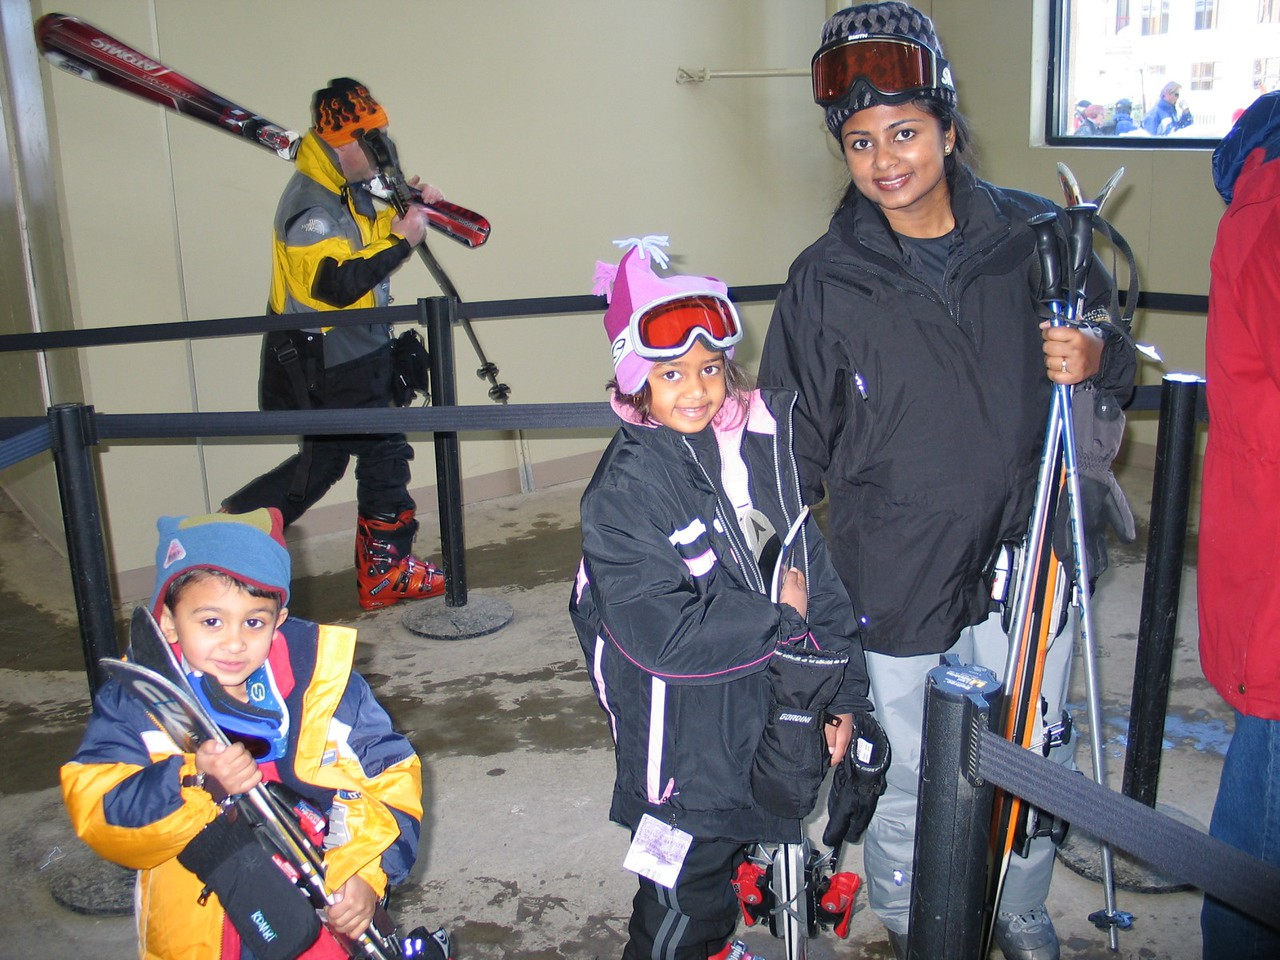 Here is Vidya, Resya and Rithik with their equipment, getting ready to board the gondola at Northstar.  You have to go up to the middle of the mountain for the ski school.